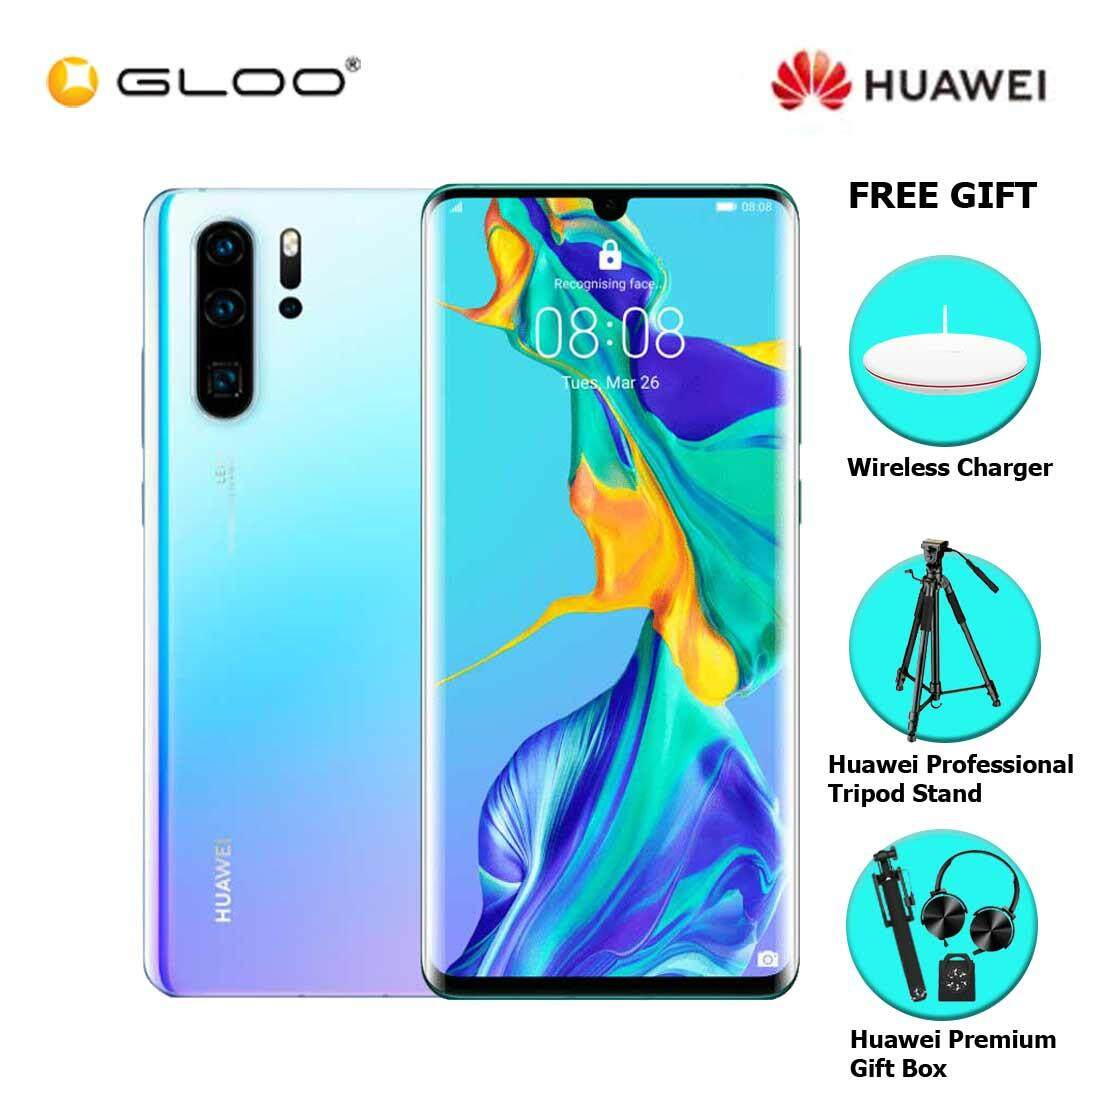 Huawei P30 Pro 8GB+256GB Breathing Crystal + FREE Huawei Wireless Charges CP60 6901443259328,Huawei Professional Tripod Stand,Premium Gift Box (Headset/Selfie Stick/iRing)